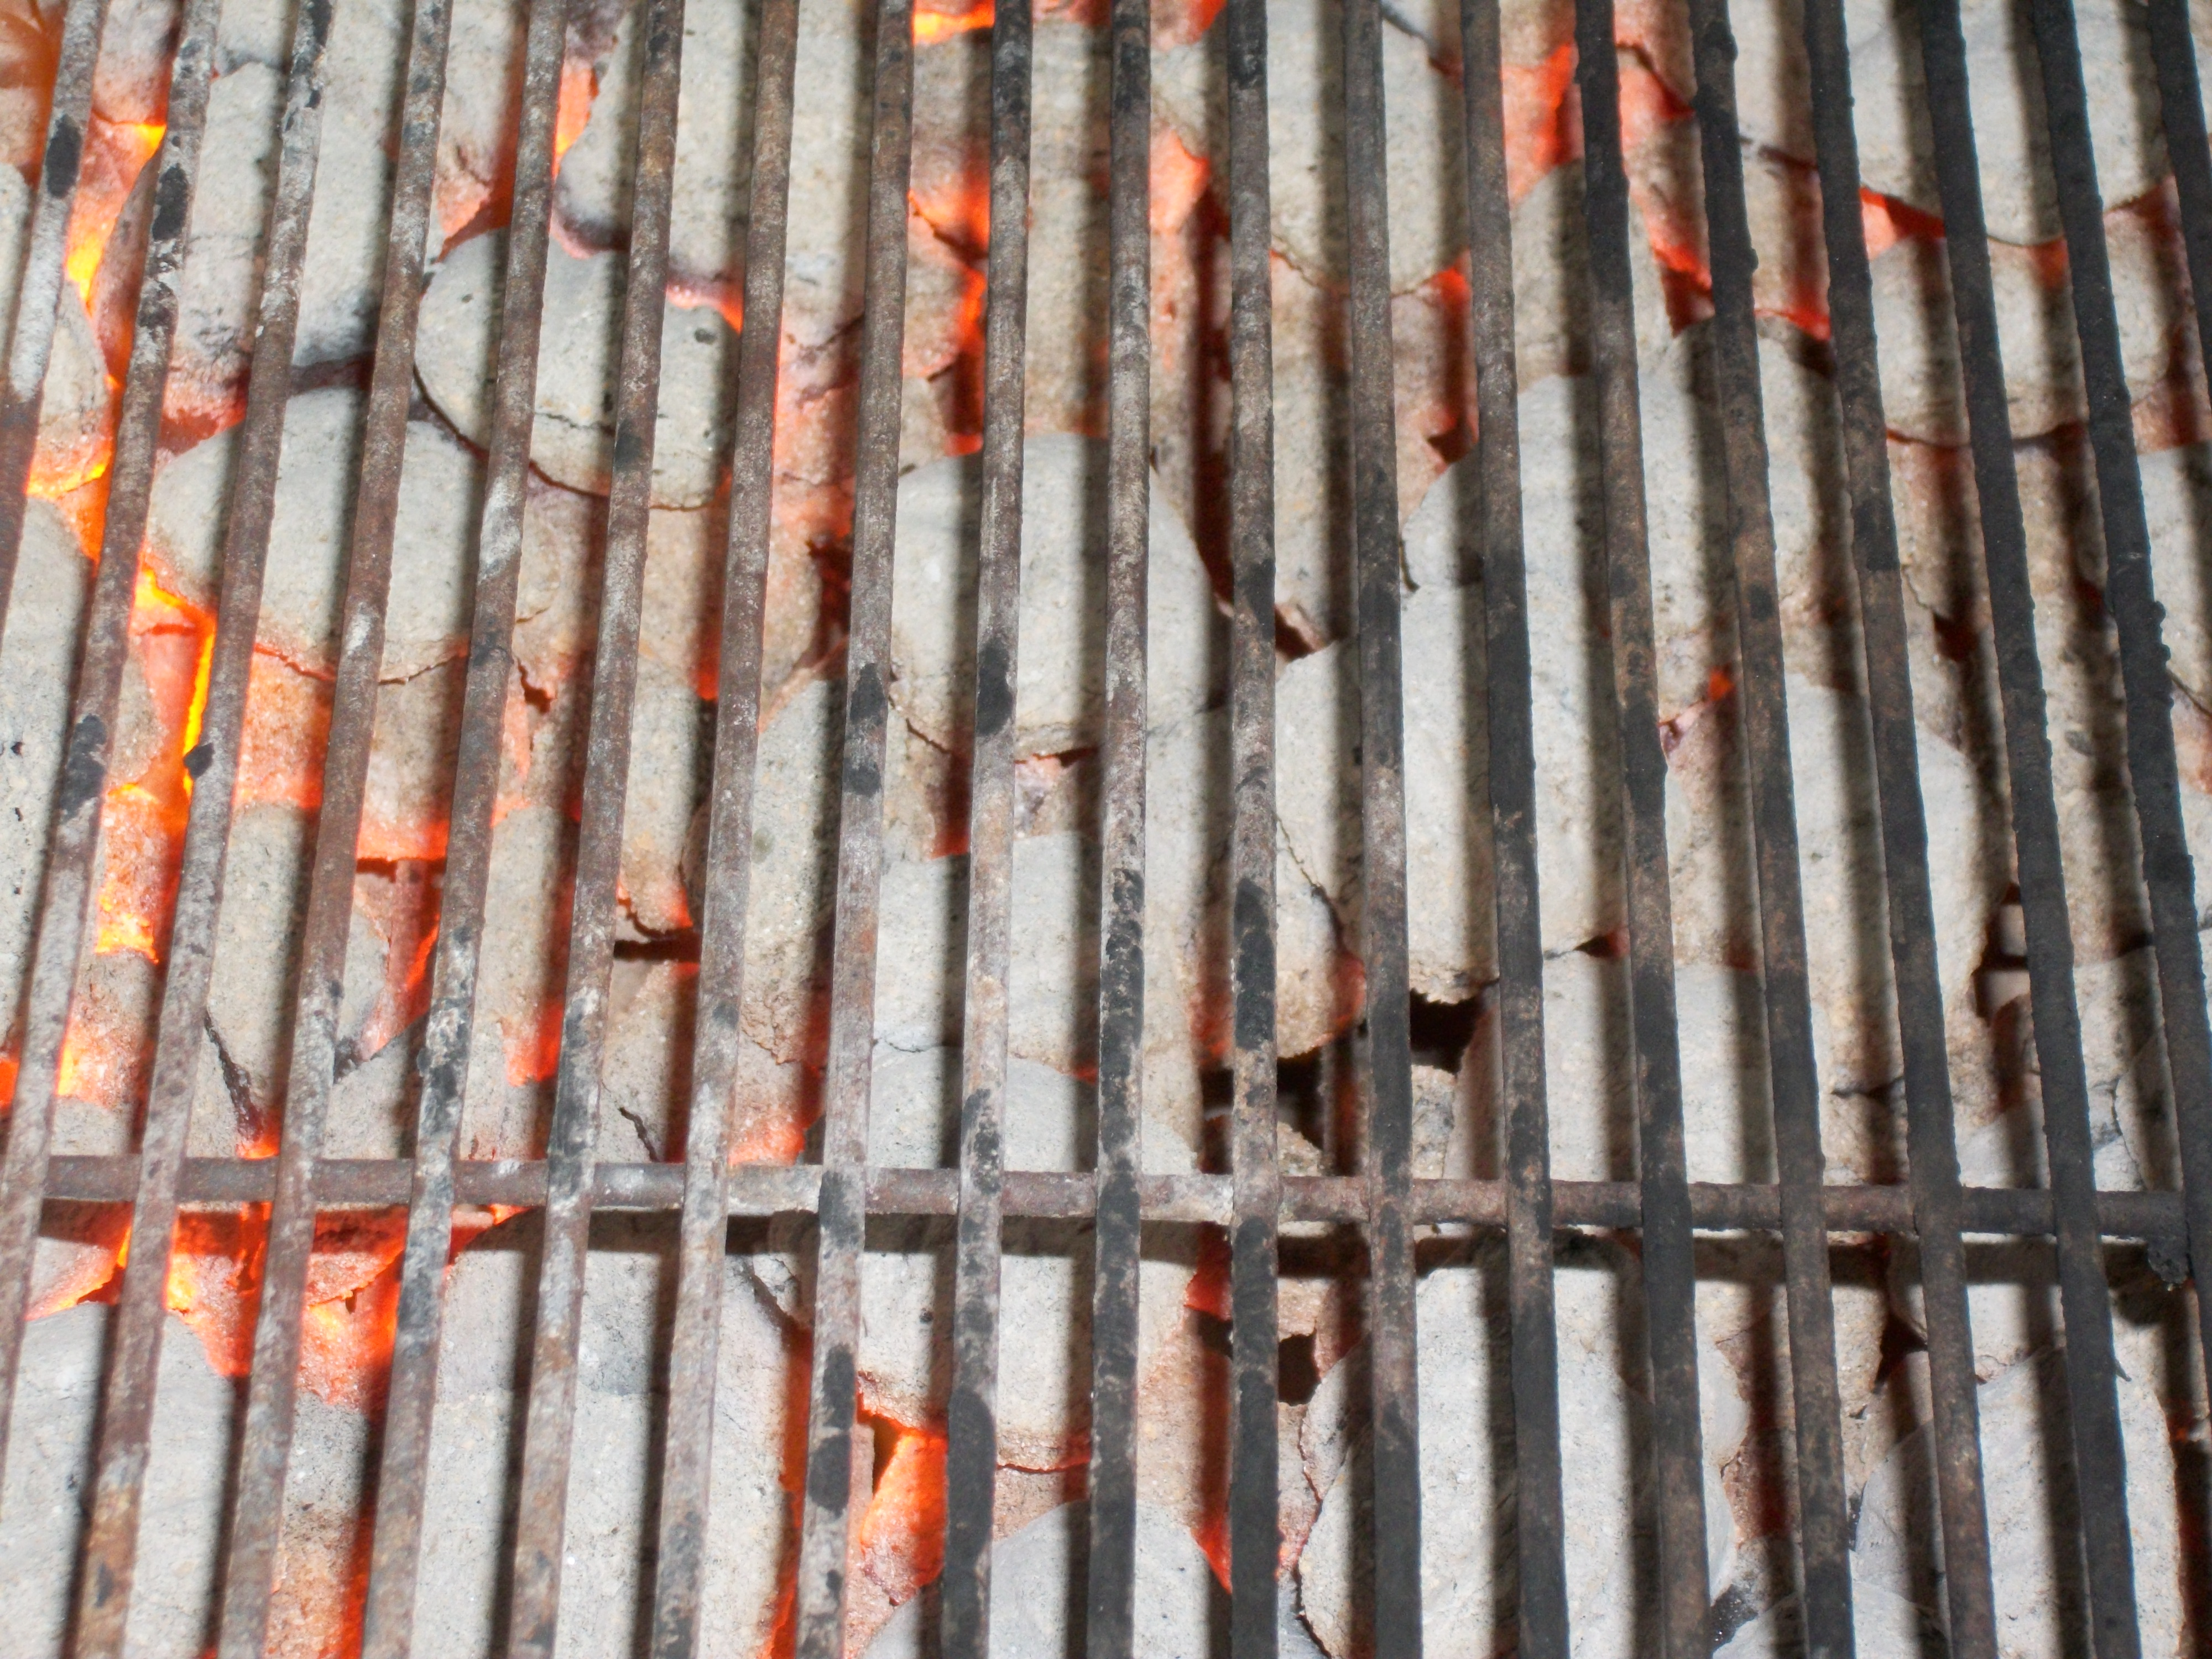 Hot coals in grill, Bbq, Coal, Cook, Fire, HQ Photo